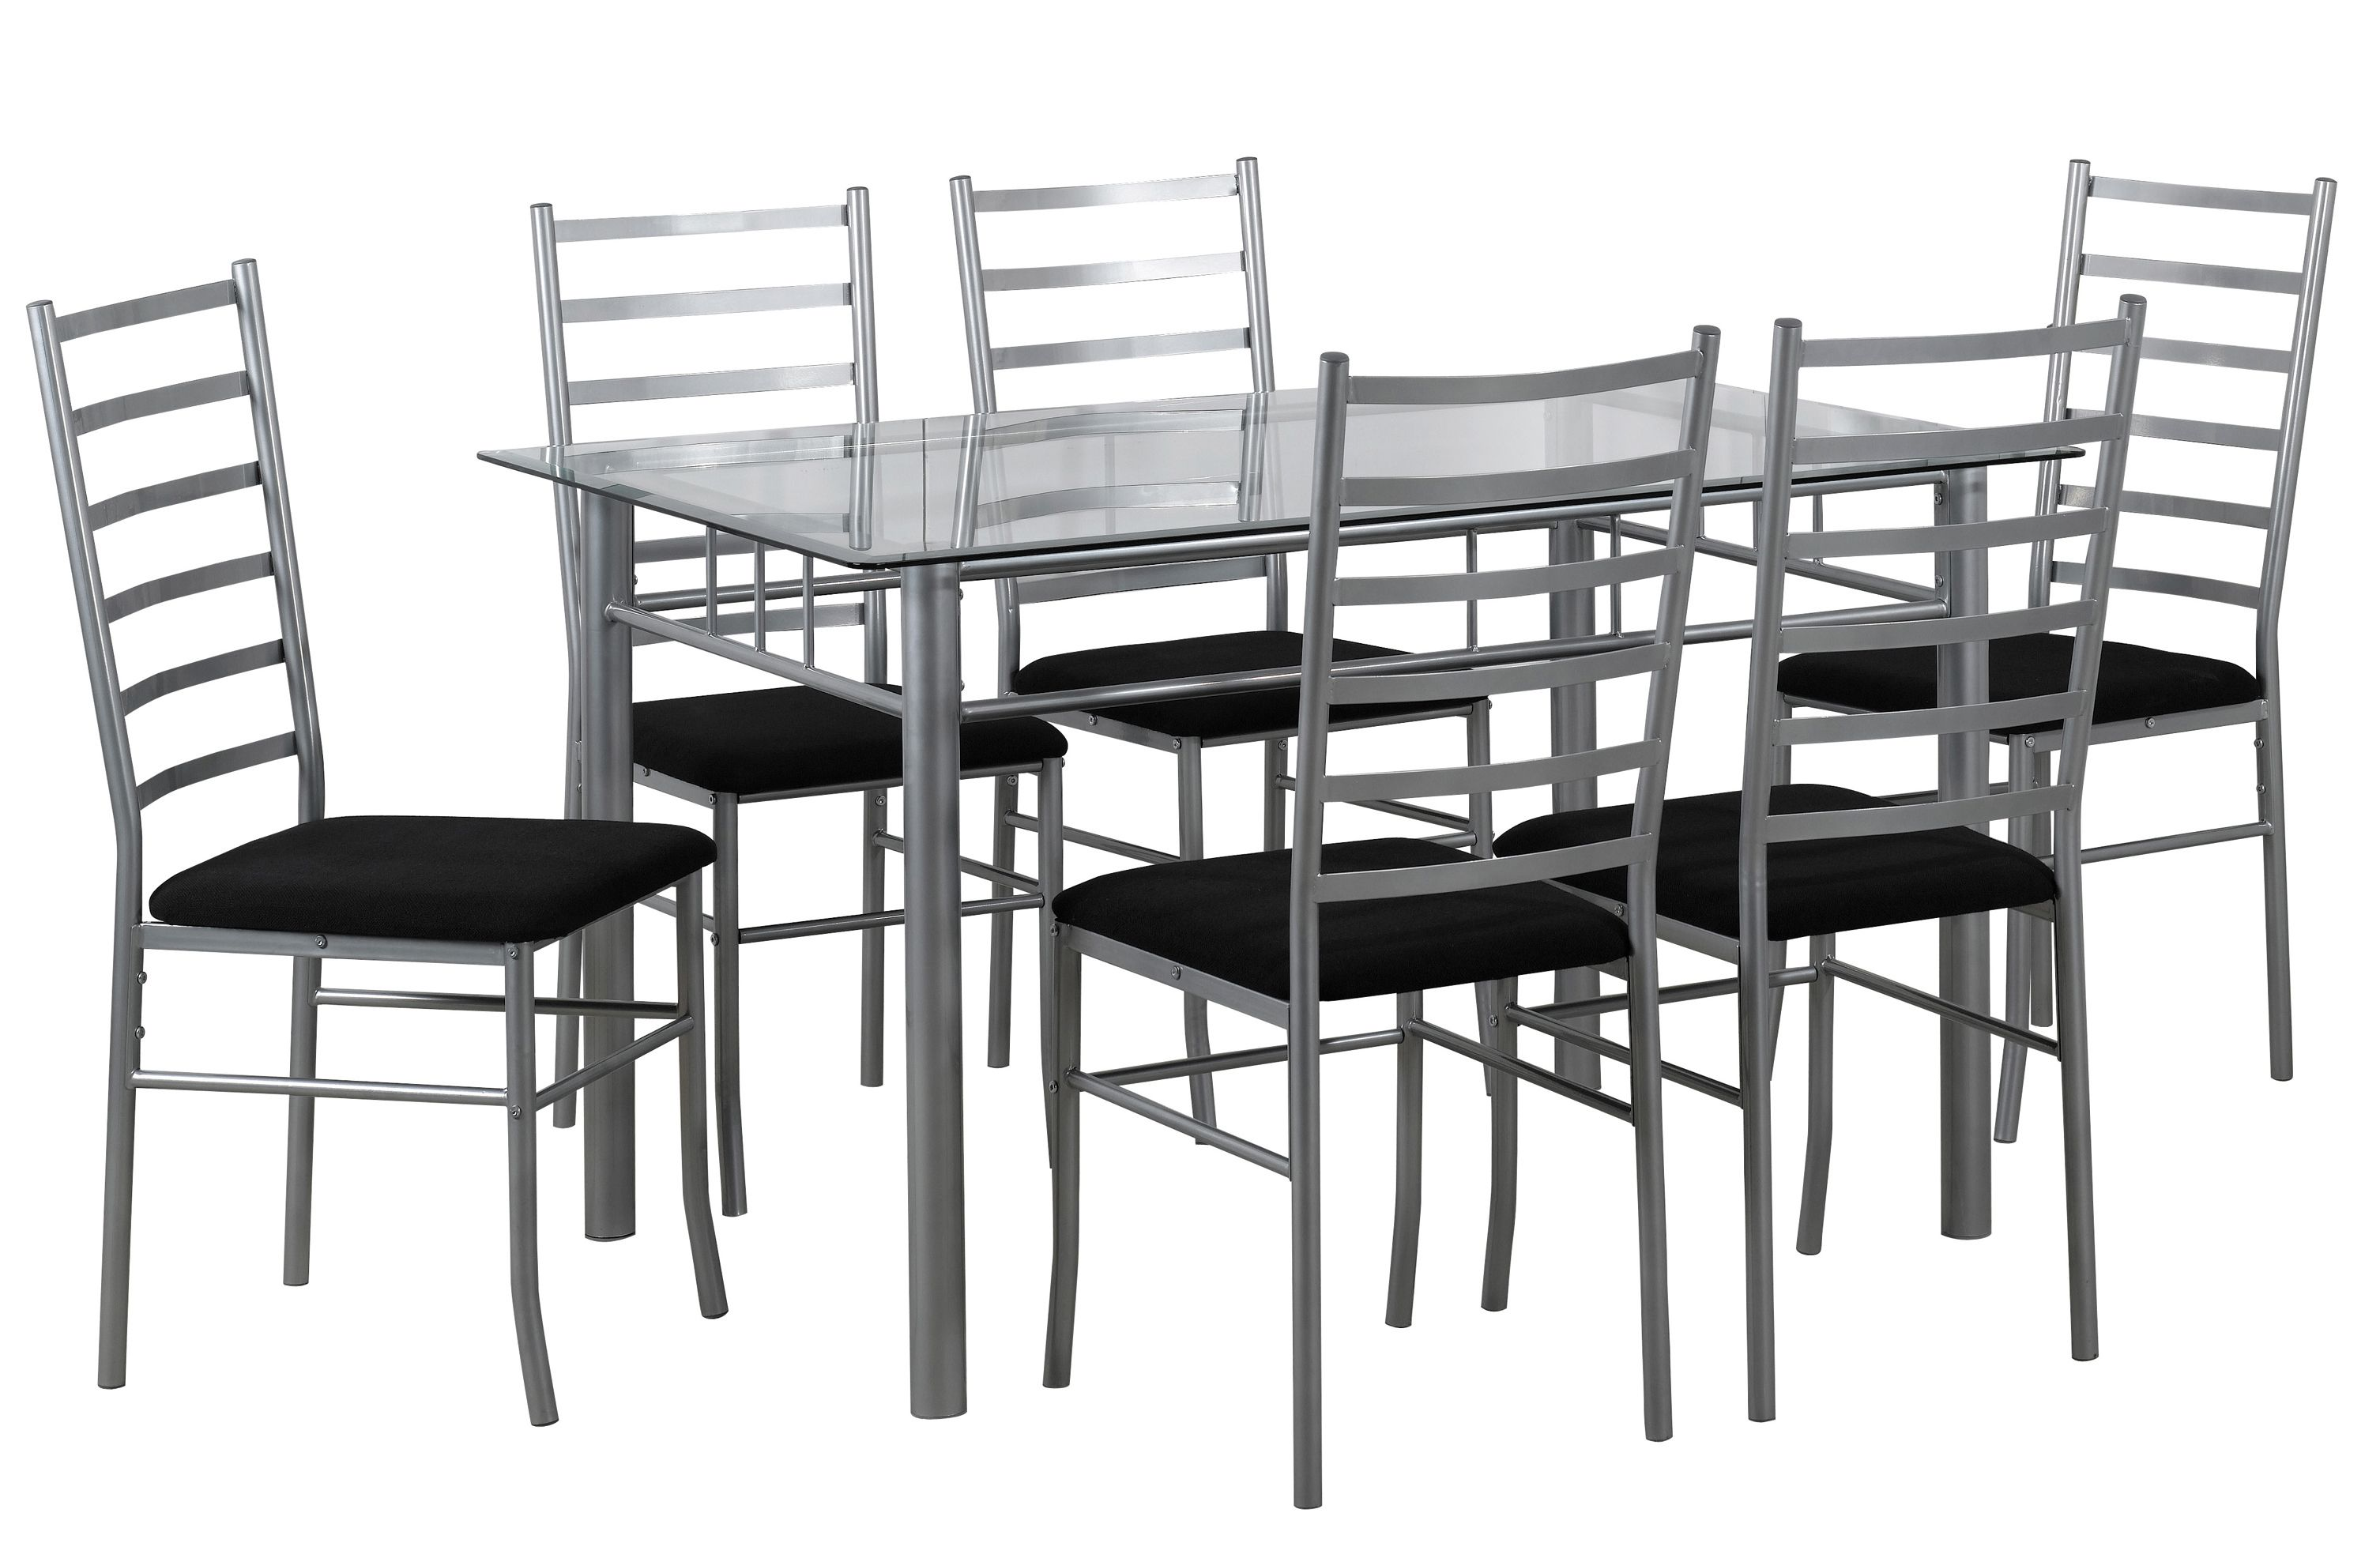 Lincoln Gl Table With 6 Black Faux Leather Chairs Dimensions L1346mm X W889mm